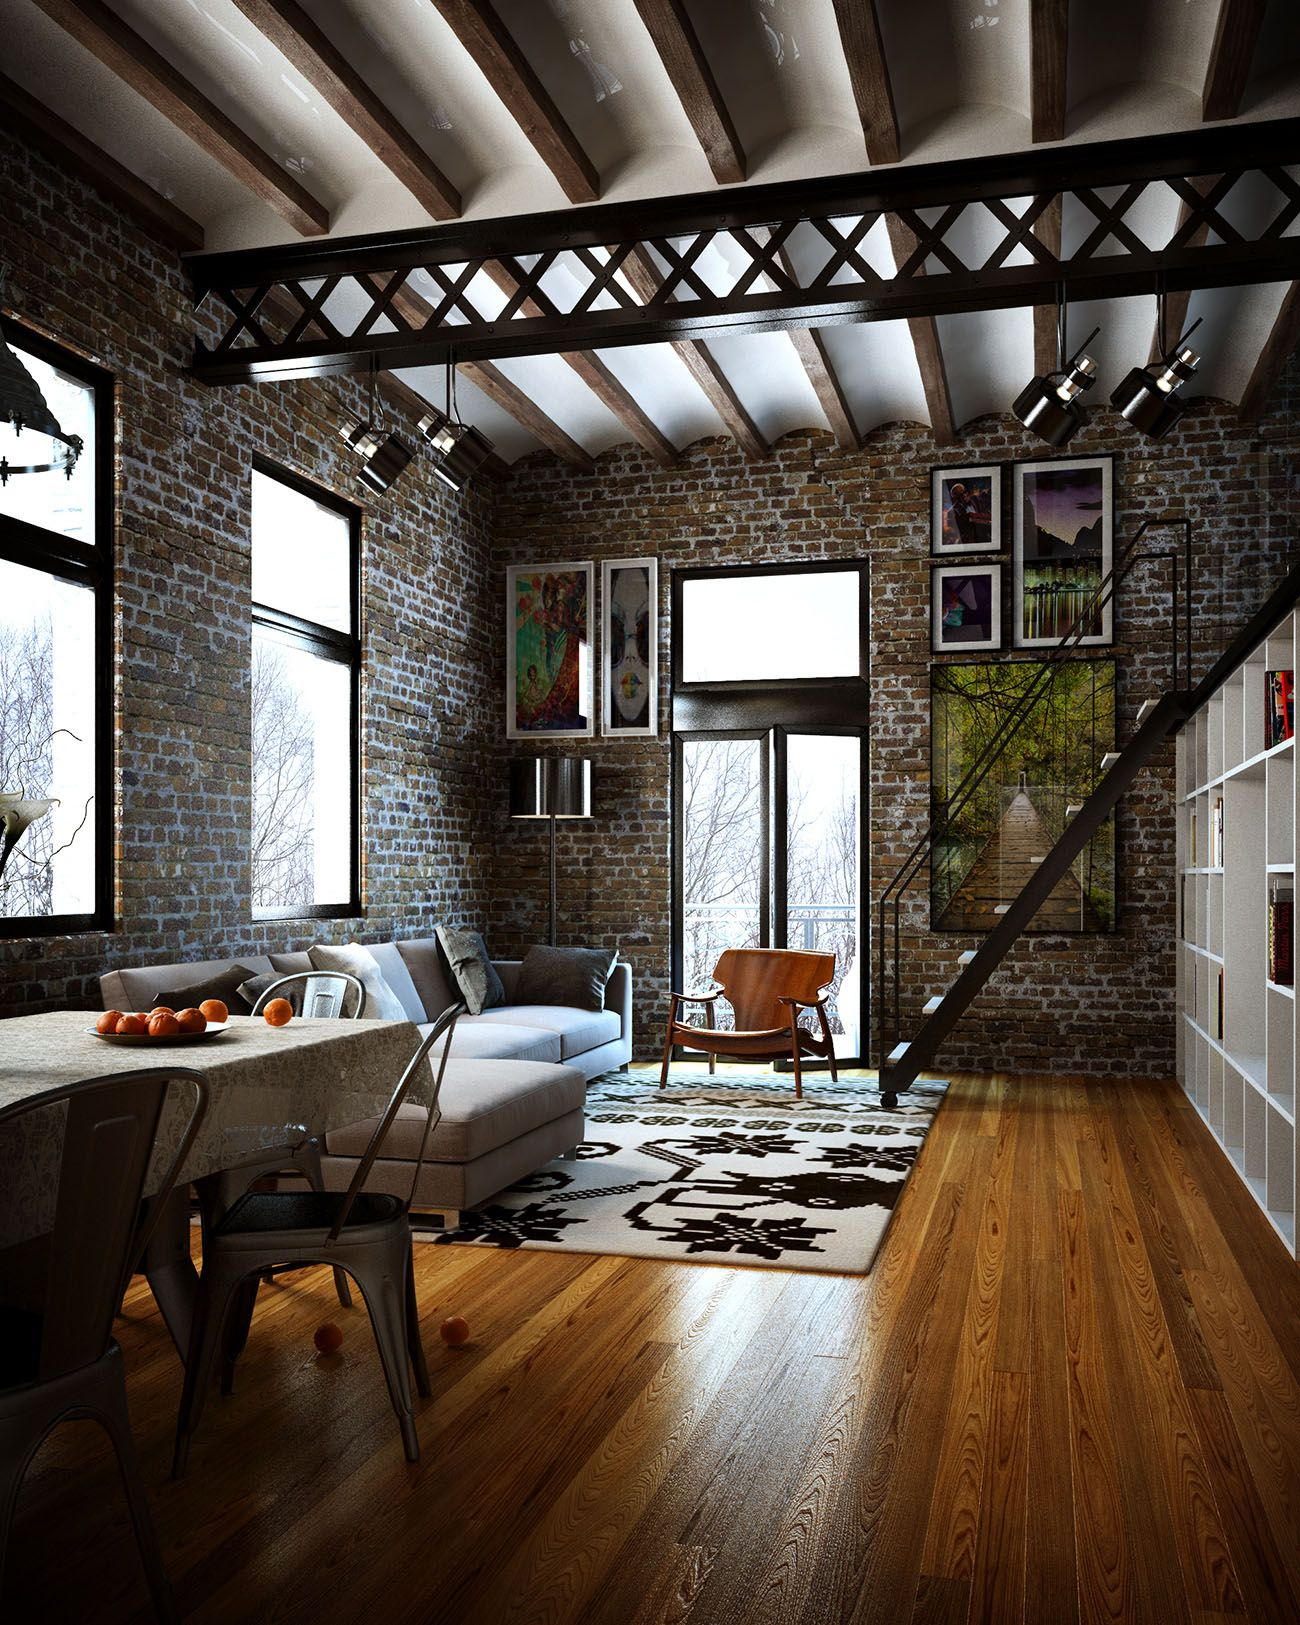 Brick walls and exposed ceiling uc loft style roots run deep